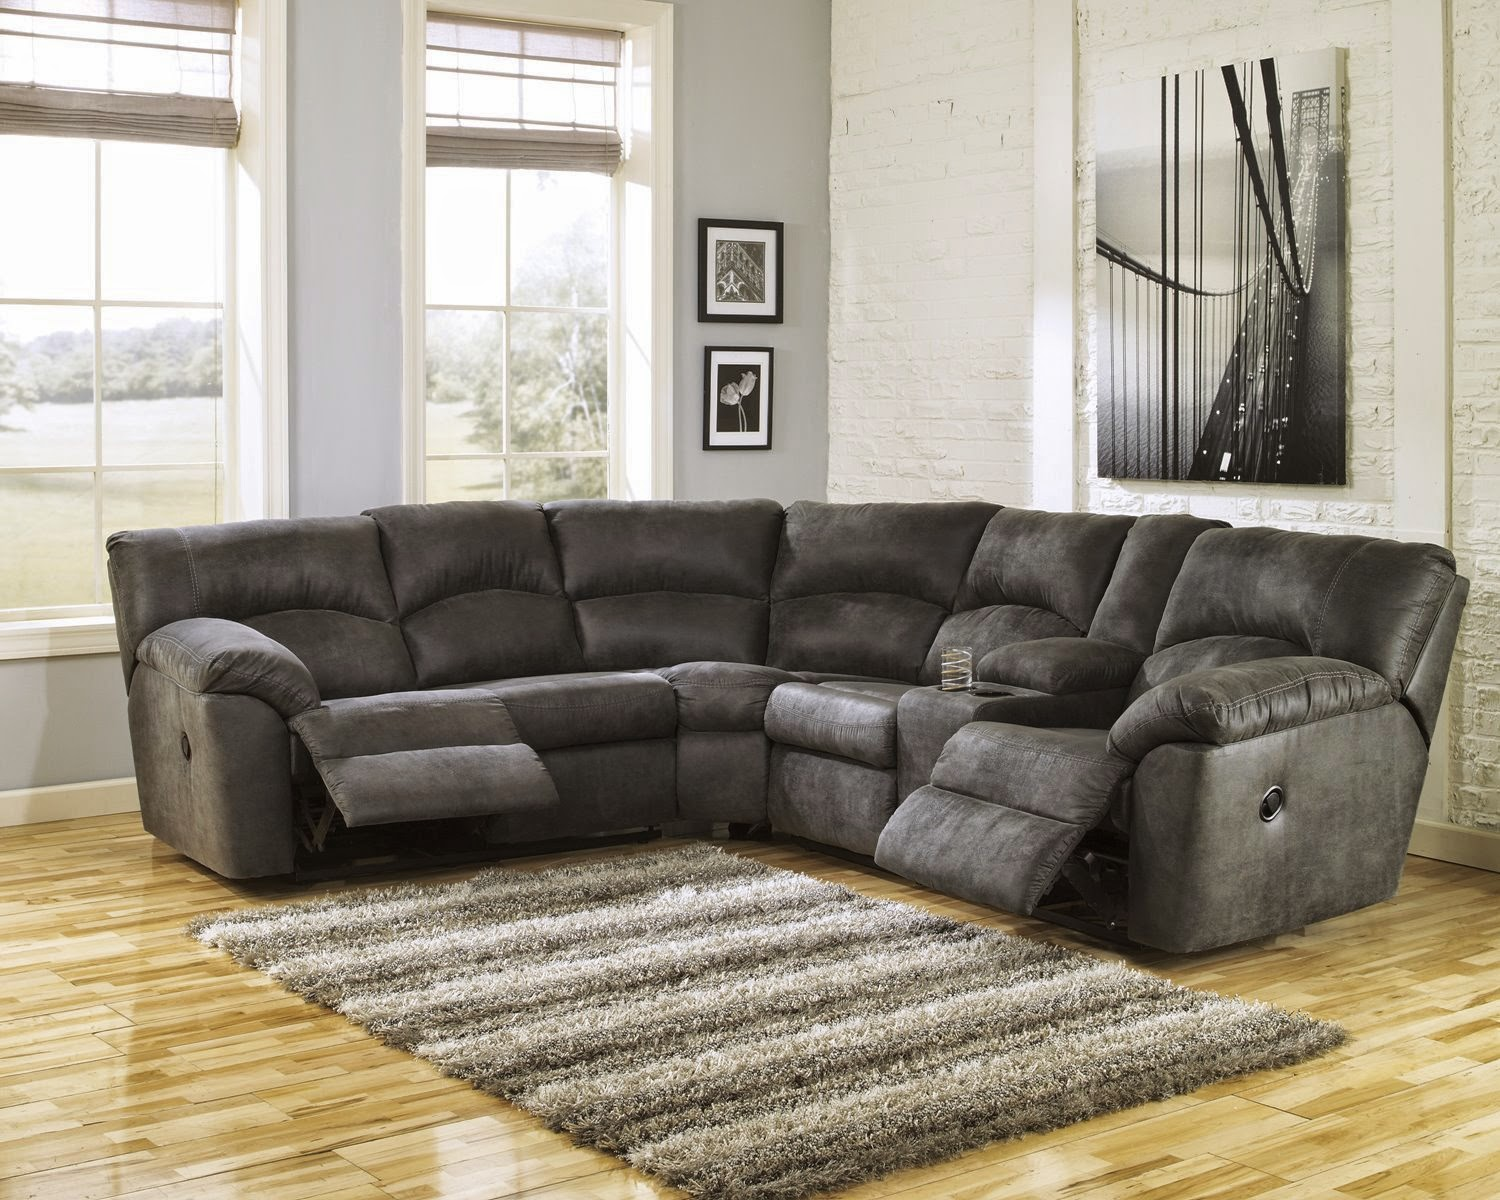 simmons blackjack cocoa reclining sofa and loveseat voyager lay flat cheap recliner sofas for sale contemporary